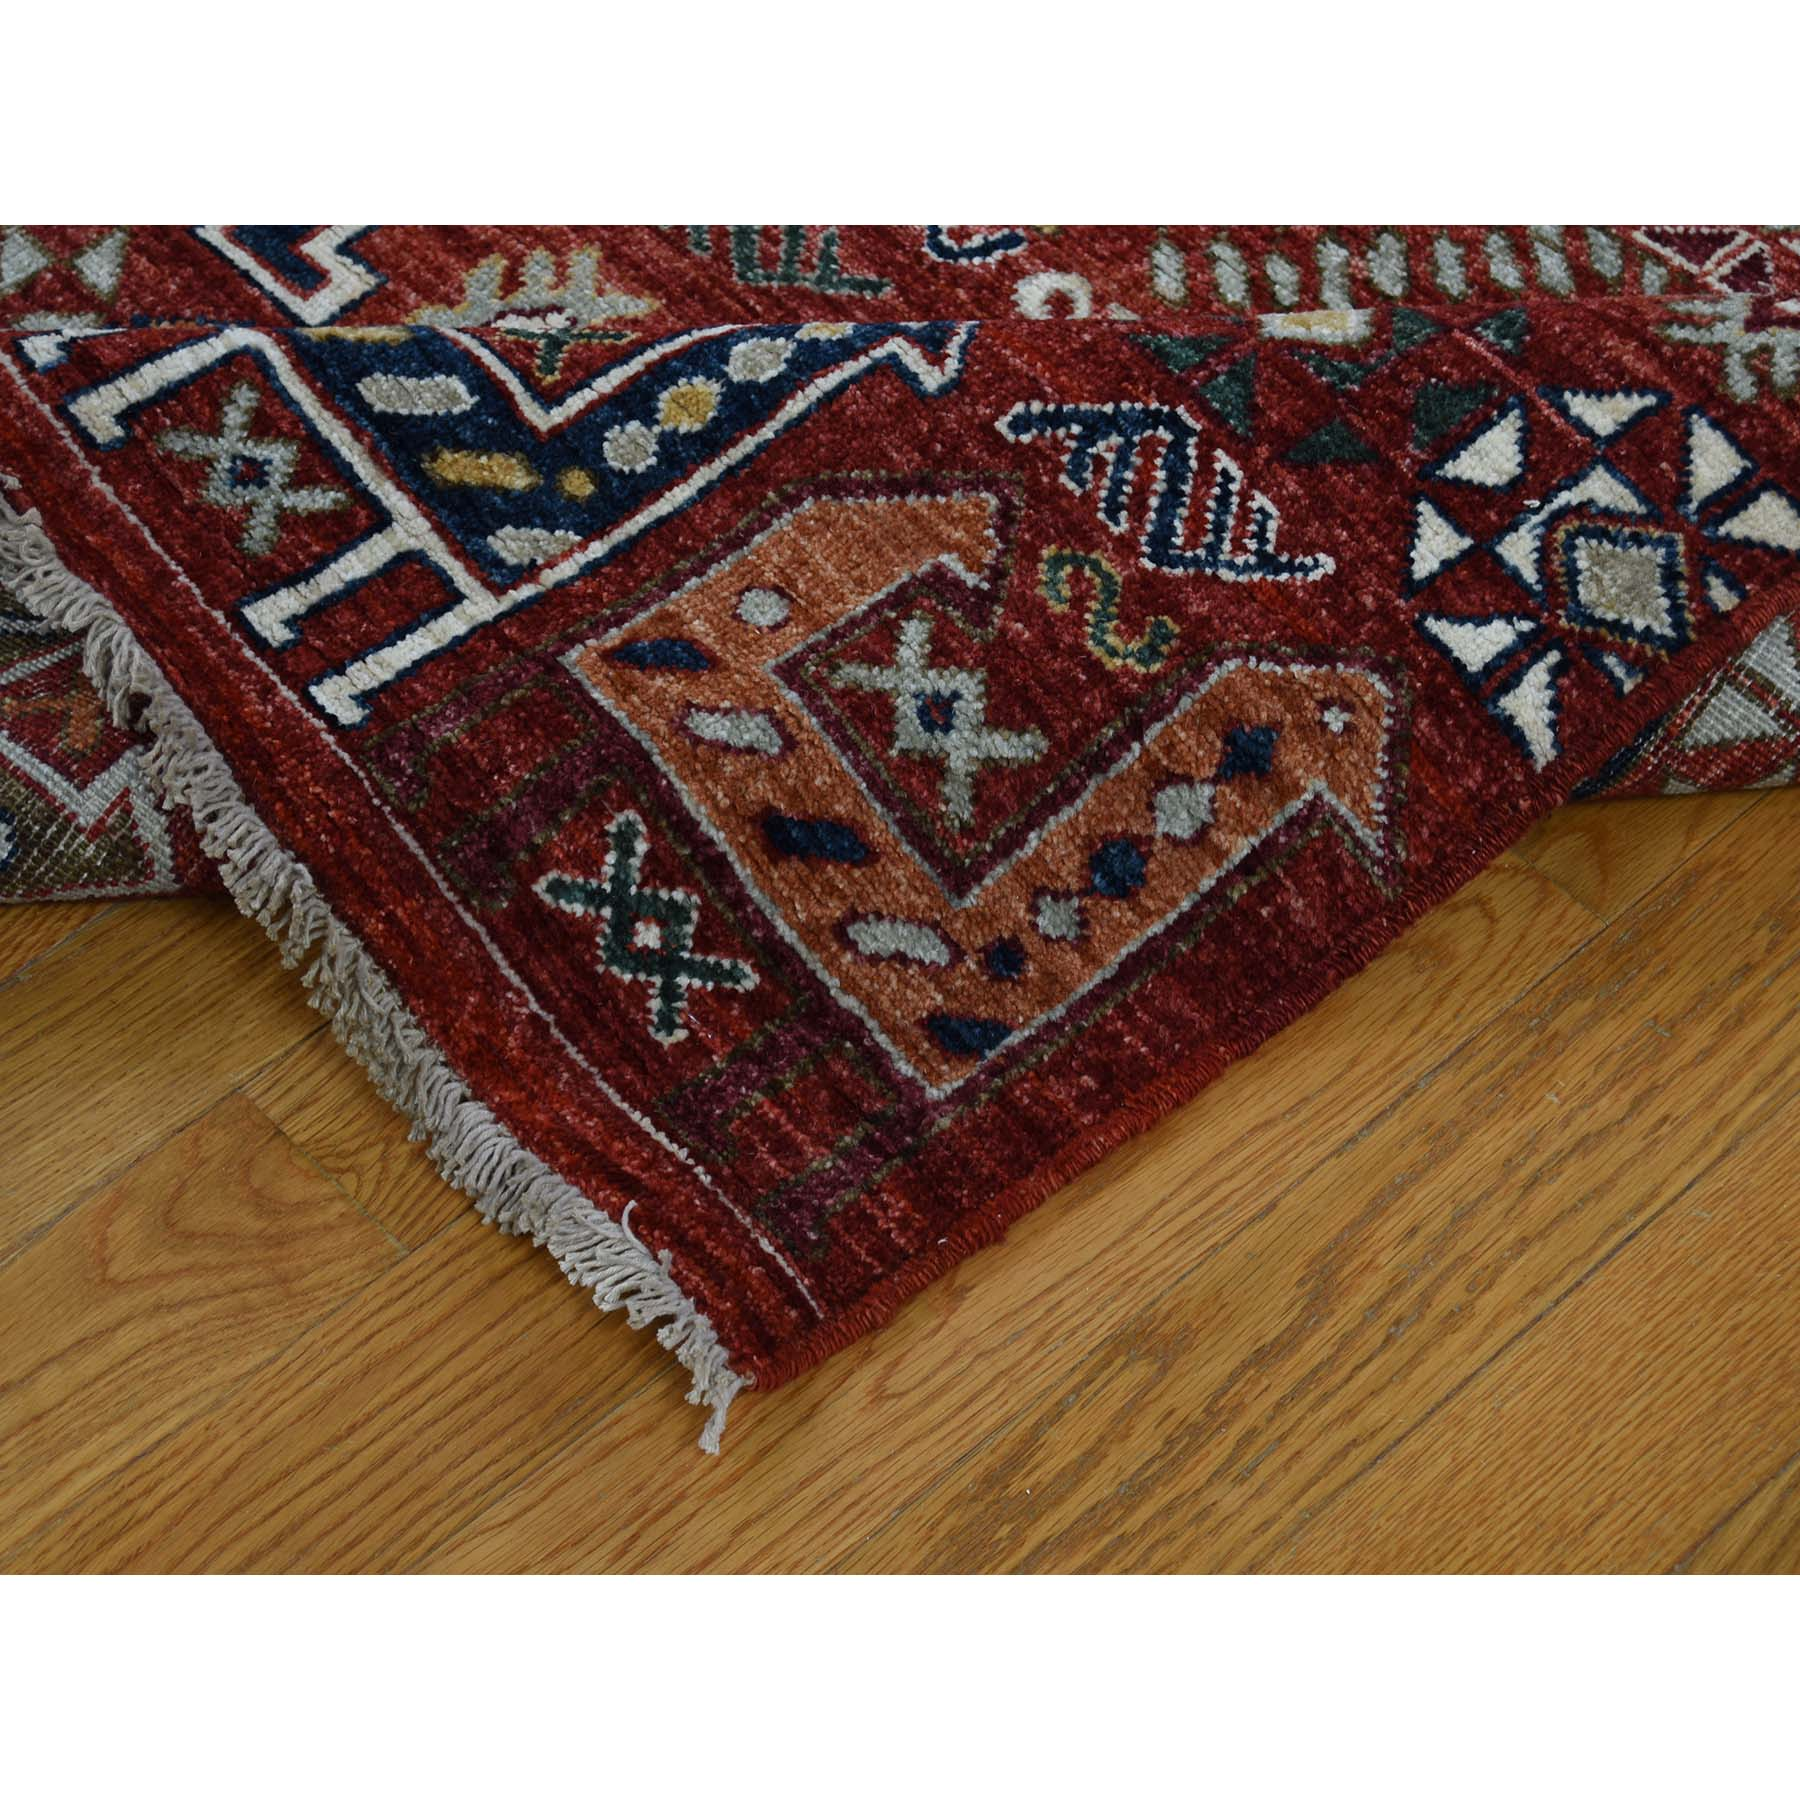 10-2 x13-8  Akstafa Design Antiqued Caucasian Hand-Knotted Pure Wool Oriental Rug